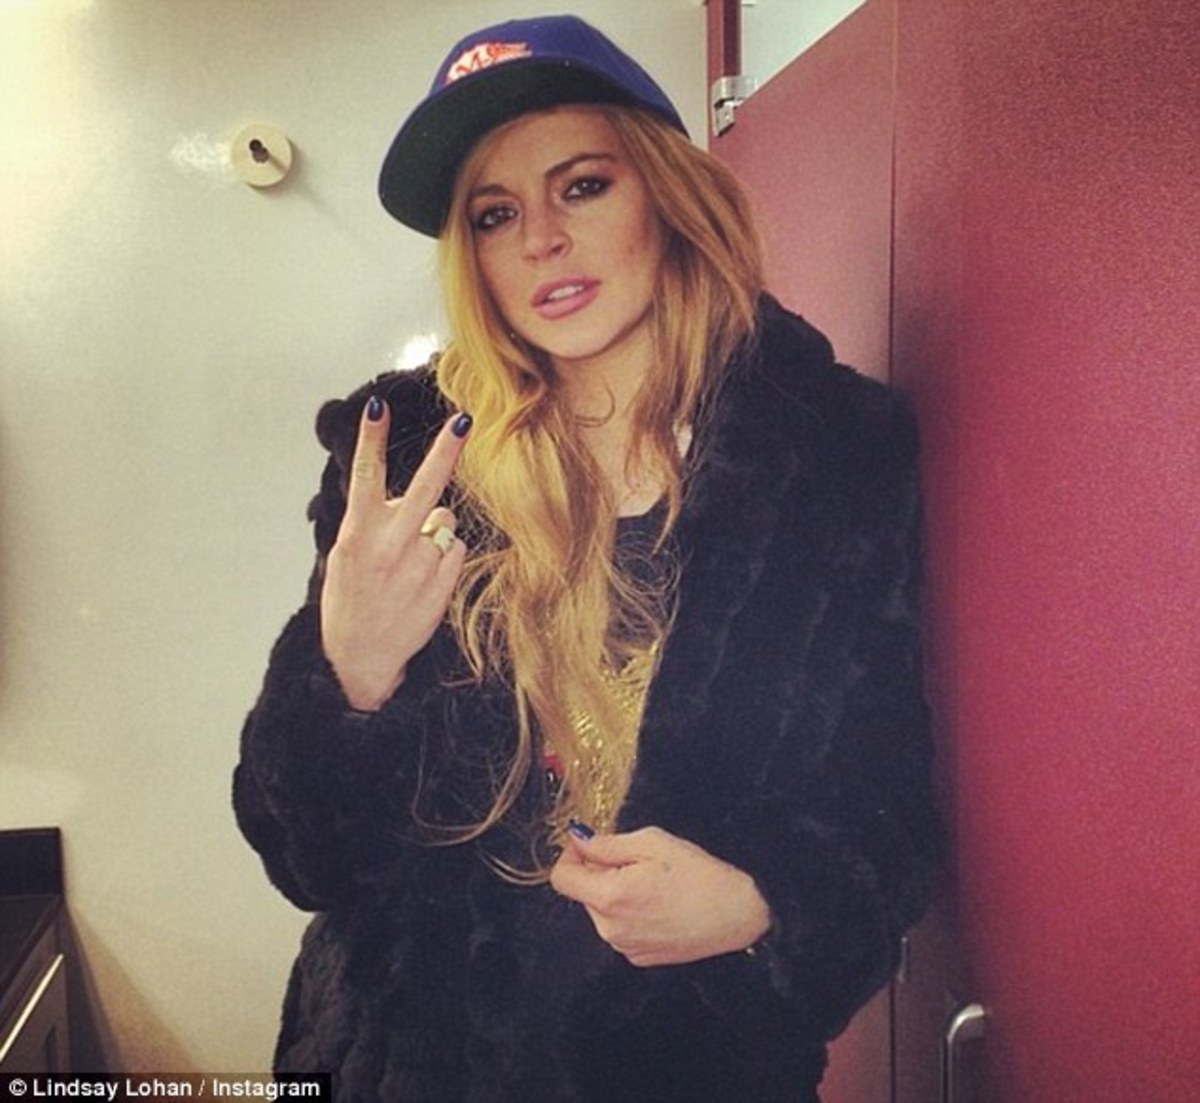 Linsday Lohan To Start DJing. You Mad Bro? Then Do Something! - EDM Culture